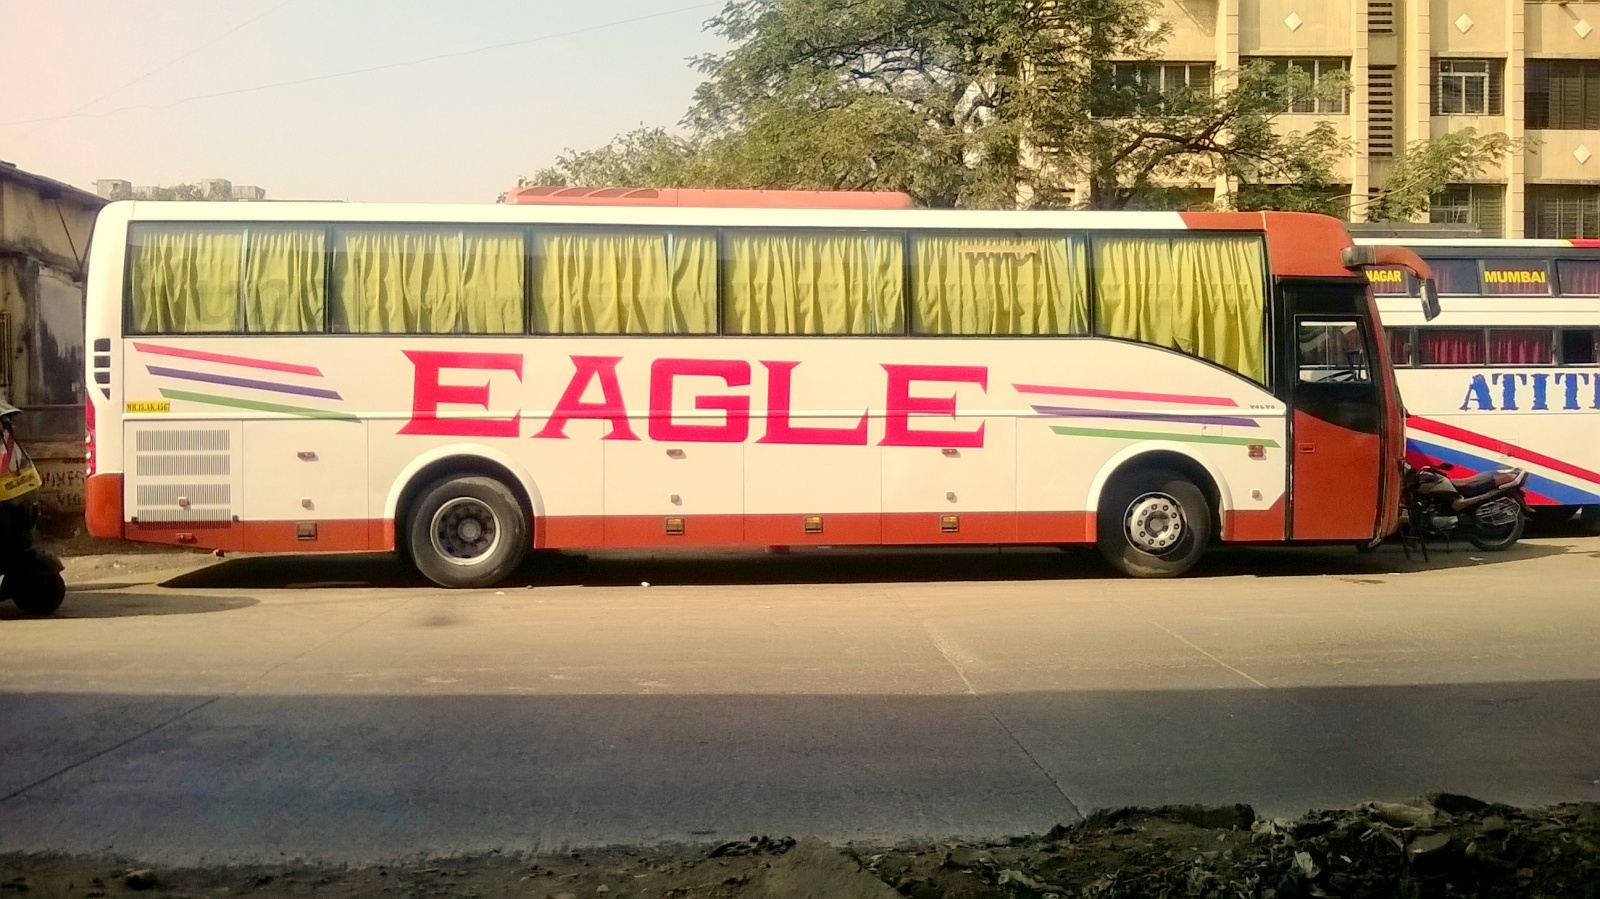 Volvo B9R   Page 1989   India Travel Forum, BCMTouring